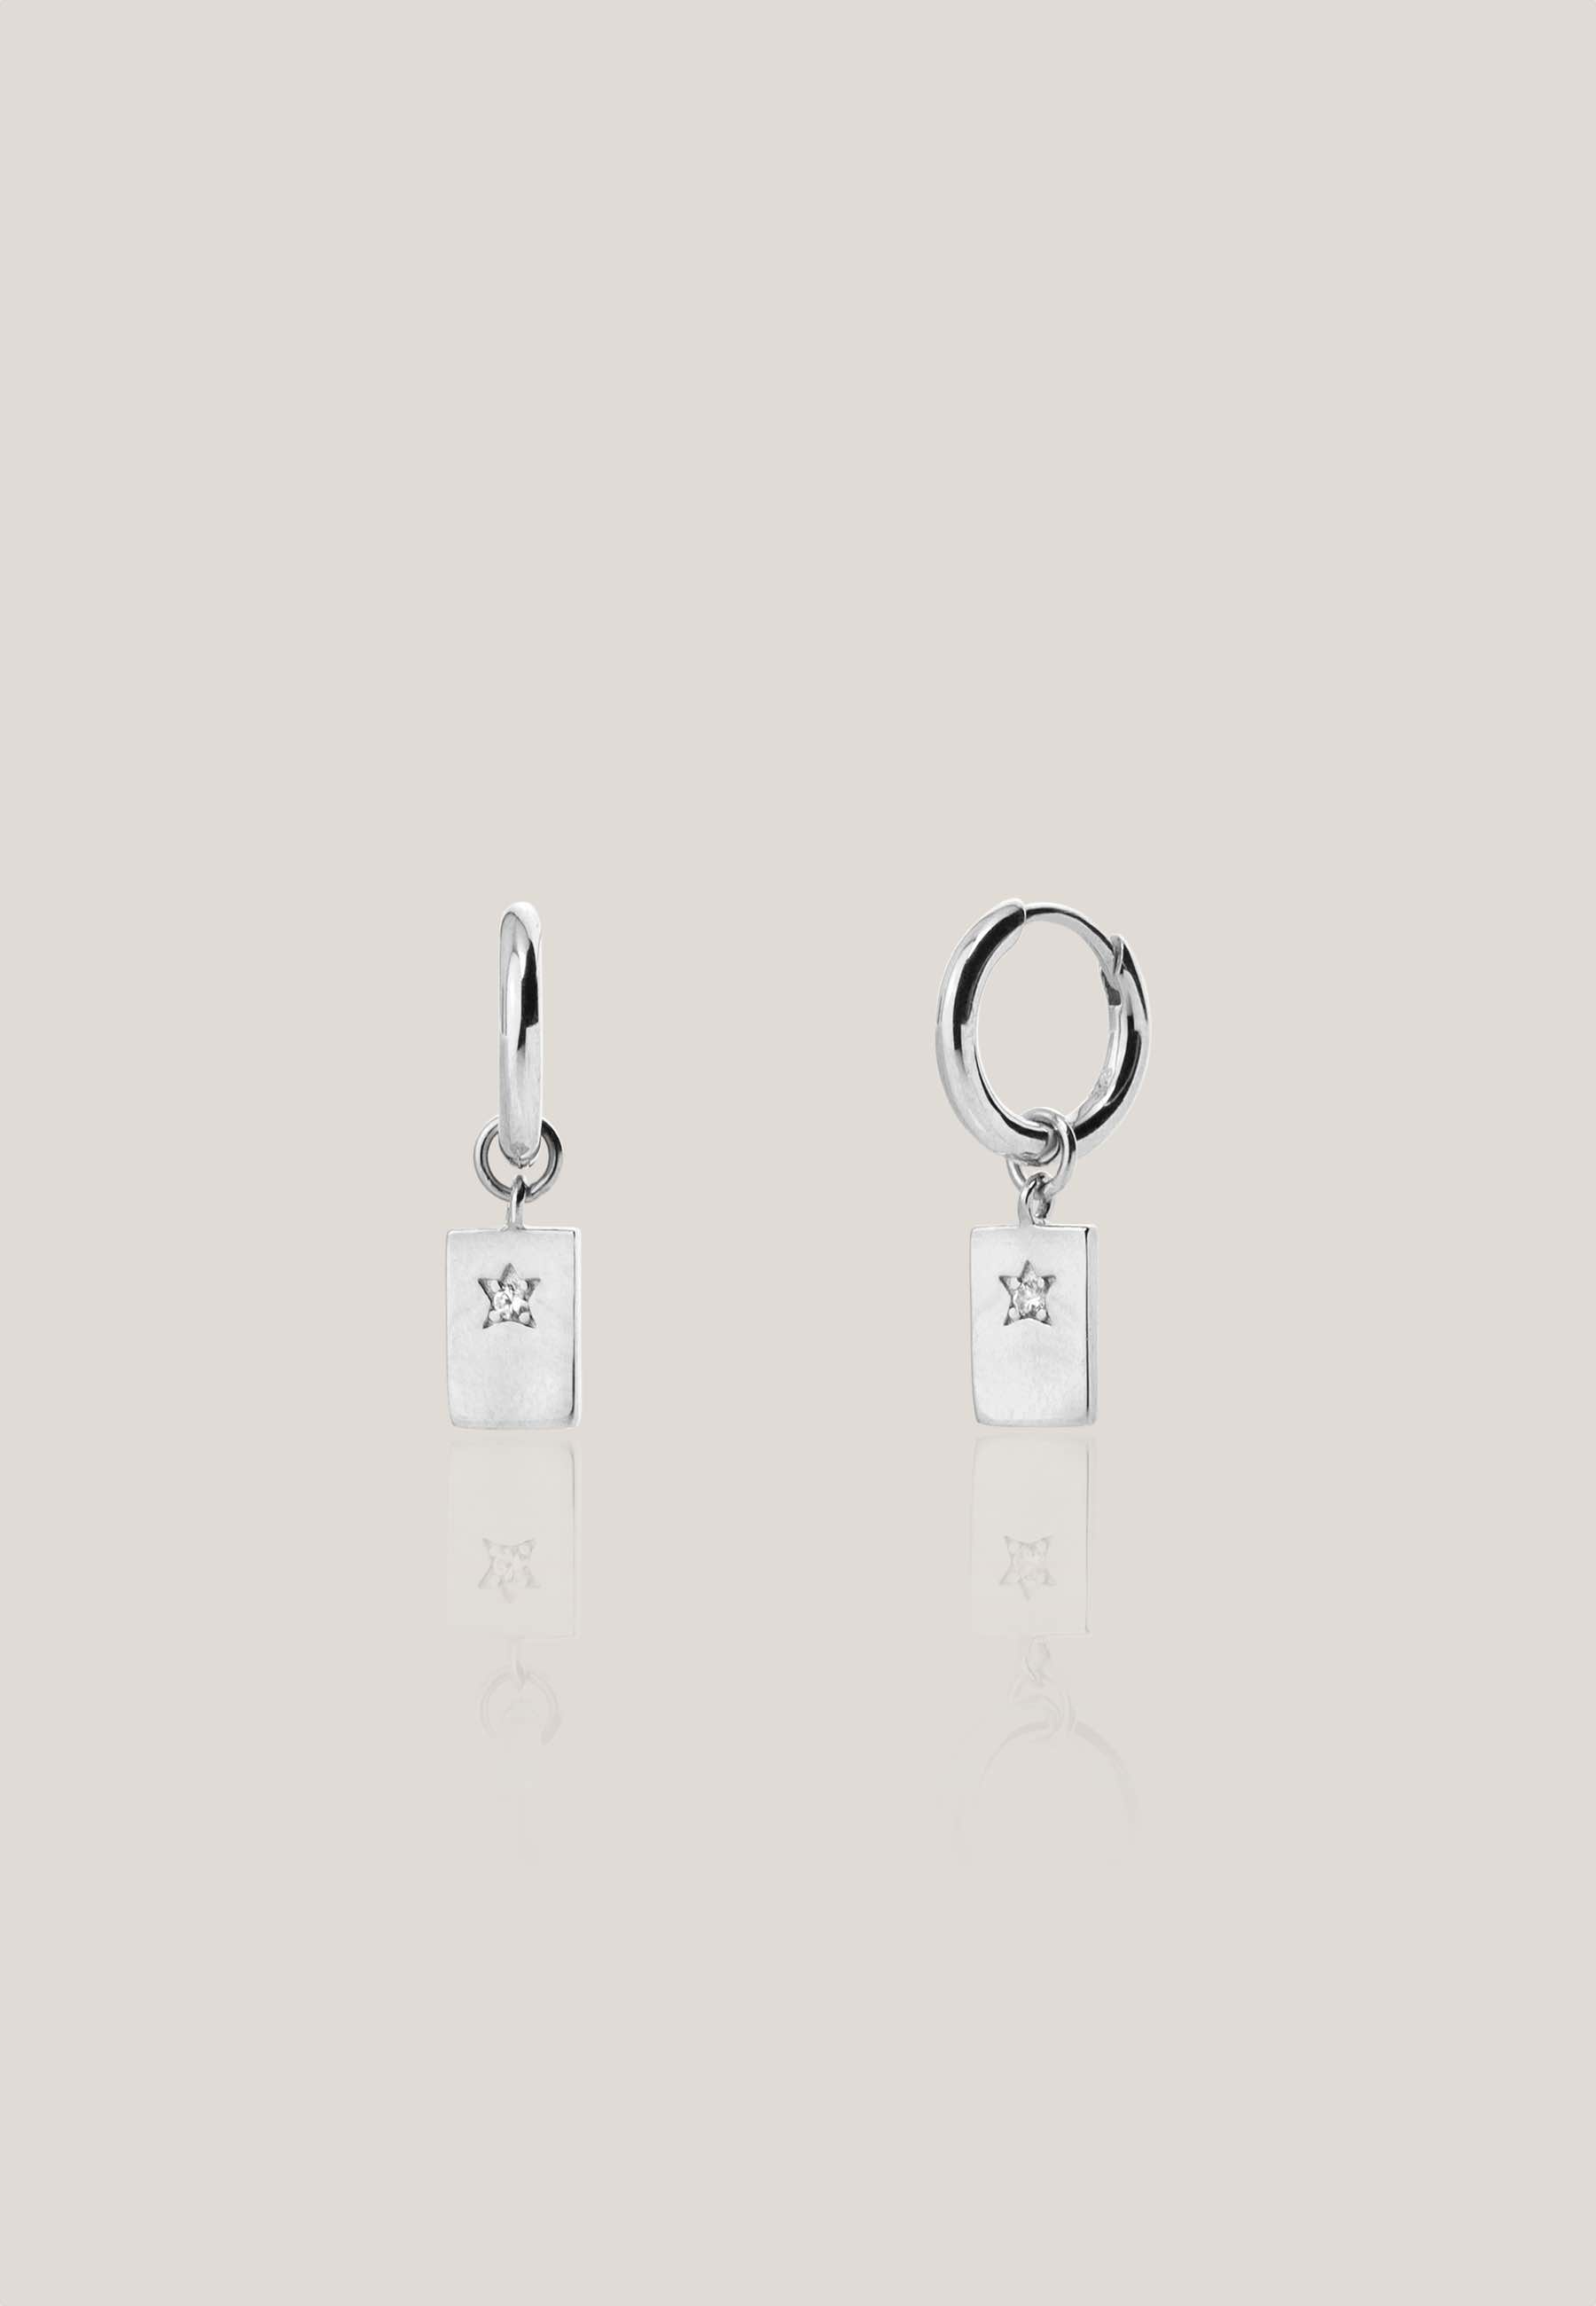 CARD silver earrings